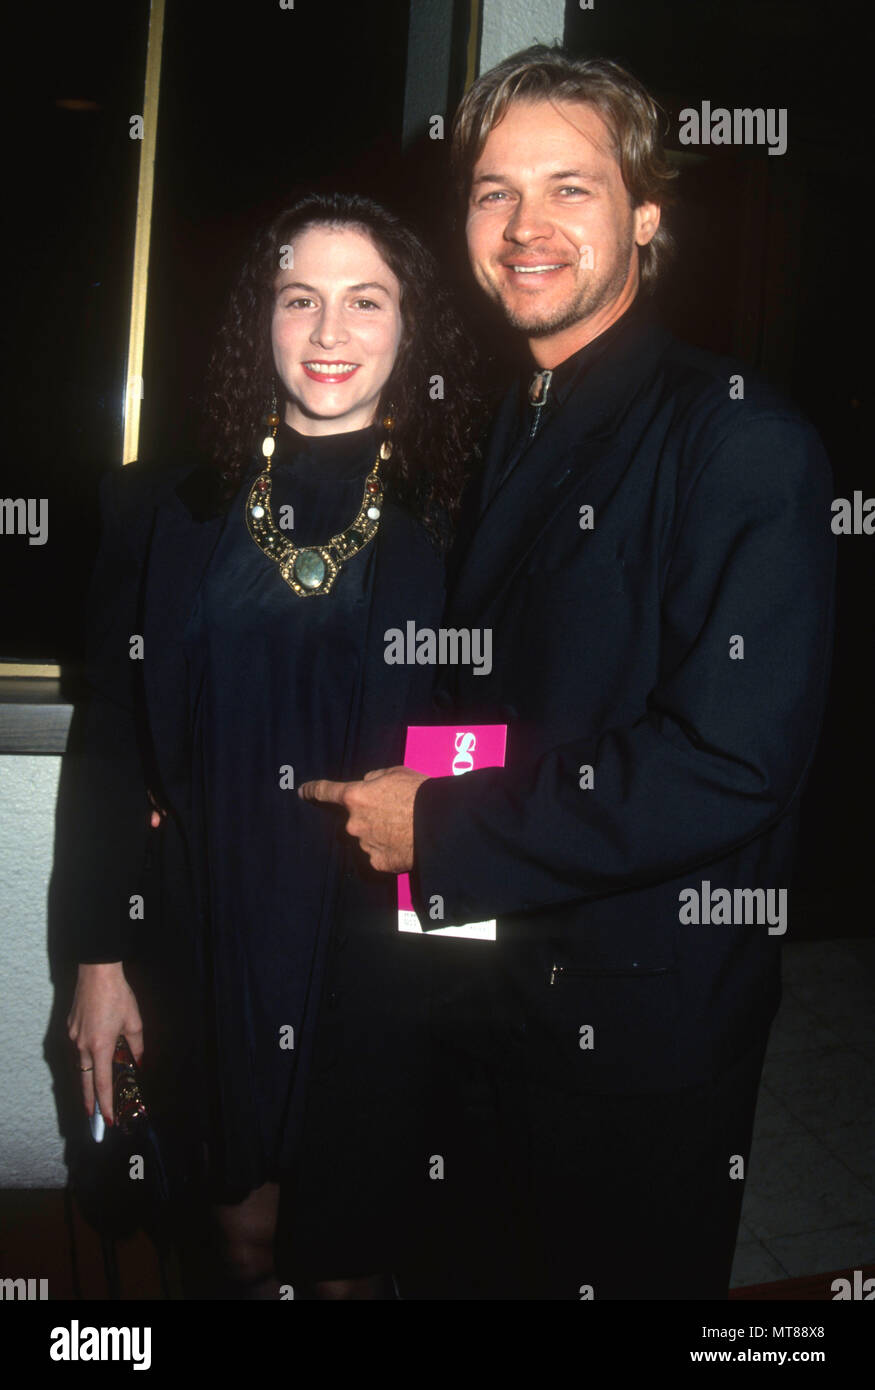 Los Angeles Ca May 23 L R Lisa Nicholas And Husband Actor Stephen Nichols Attend The Soapdish Westwood Premiere On May 23 1991 At Mann National Theatre In Los Angeles California Photo